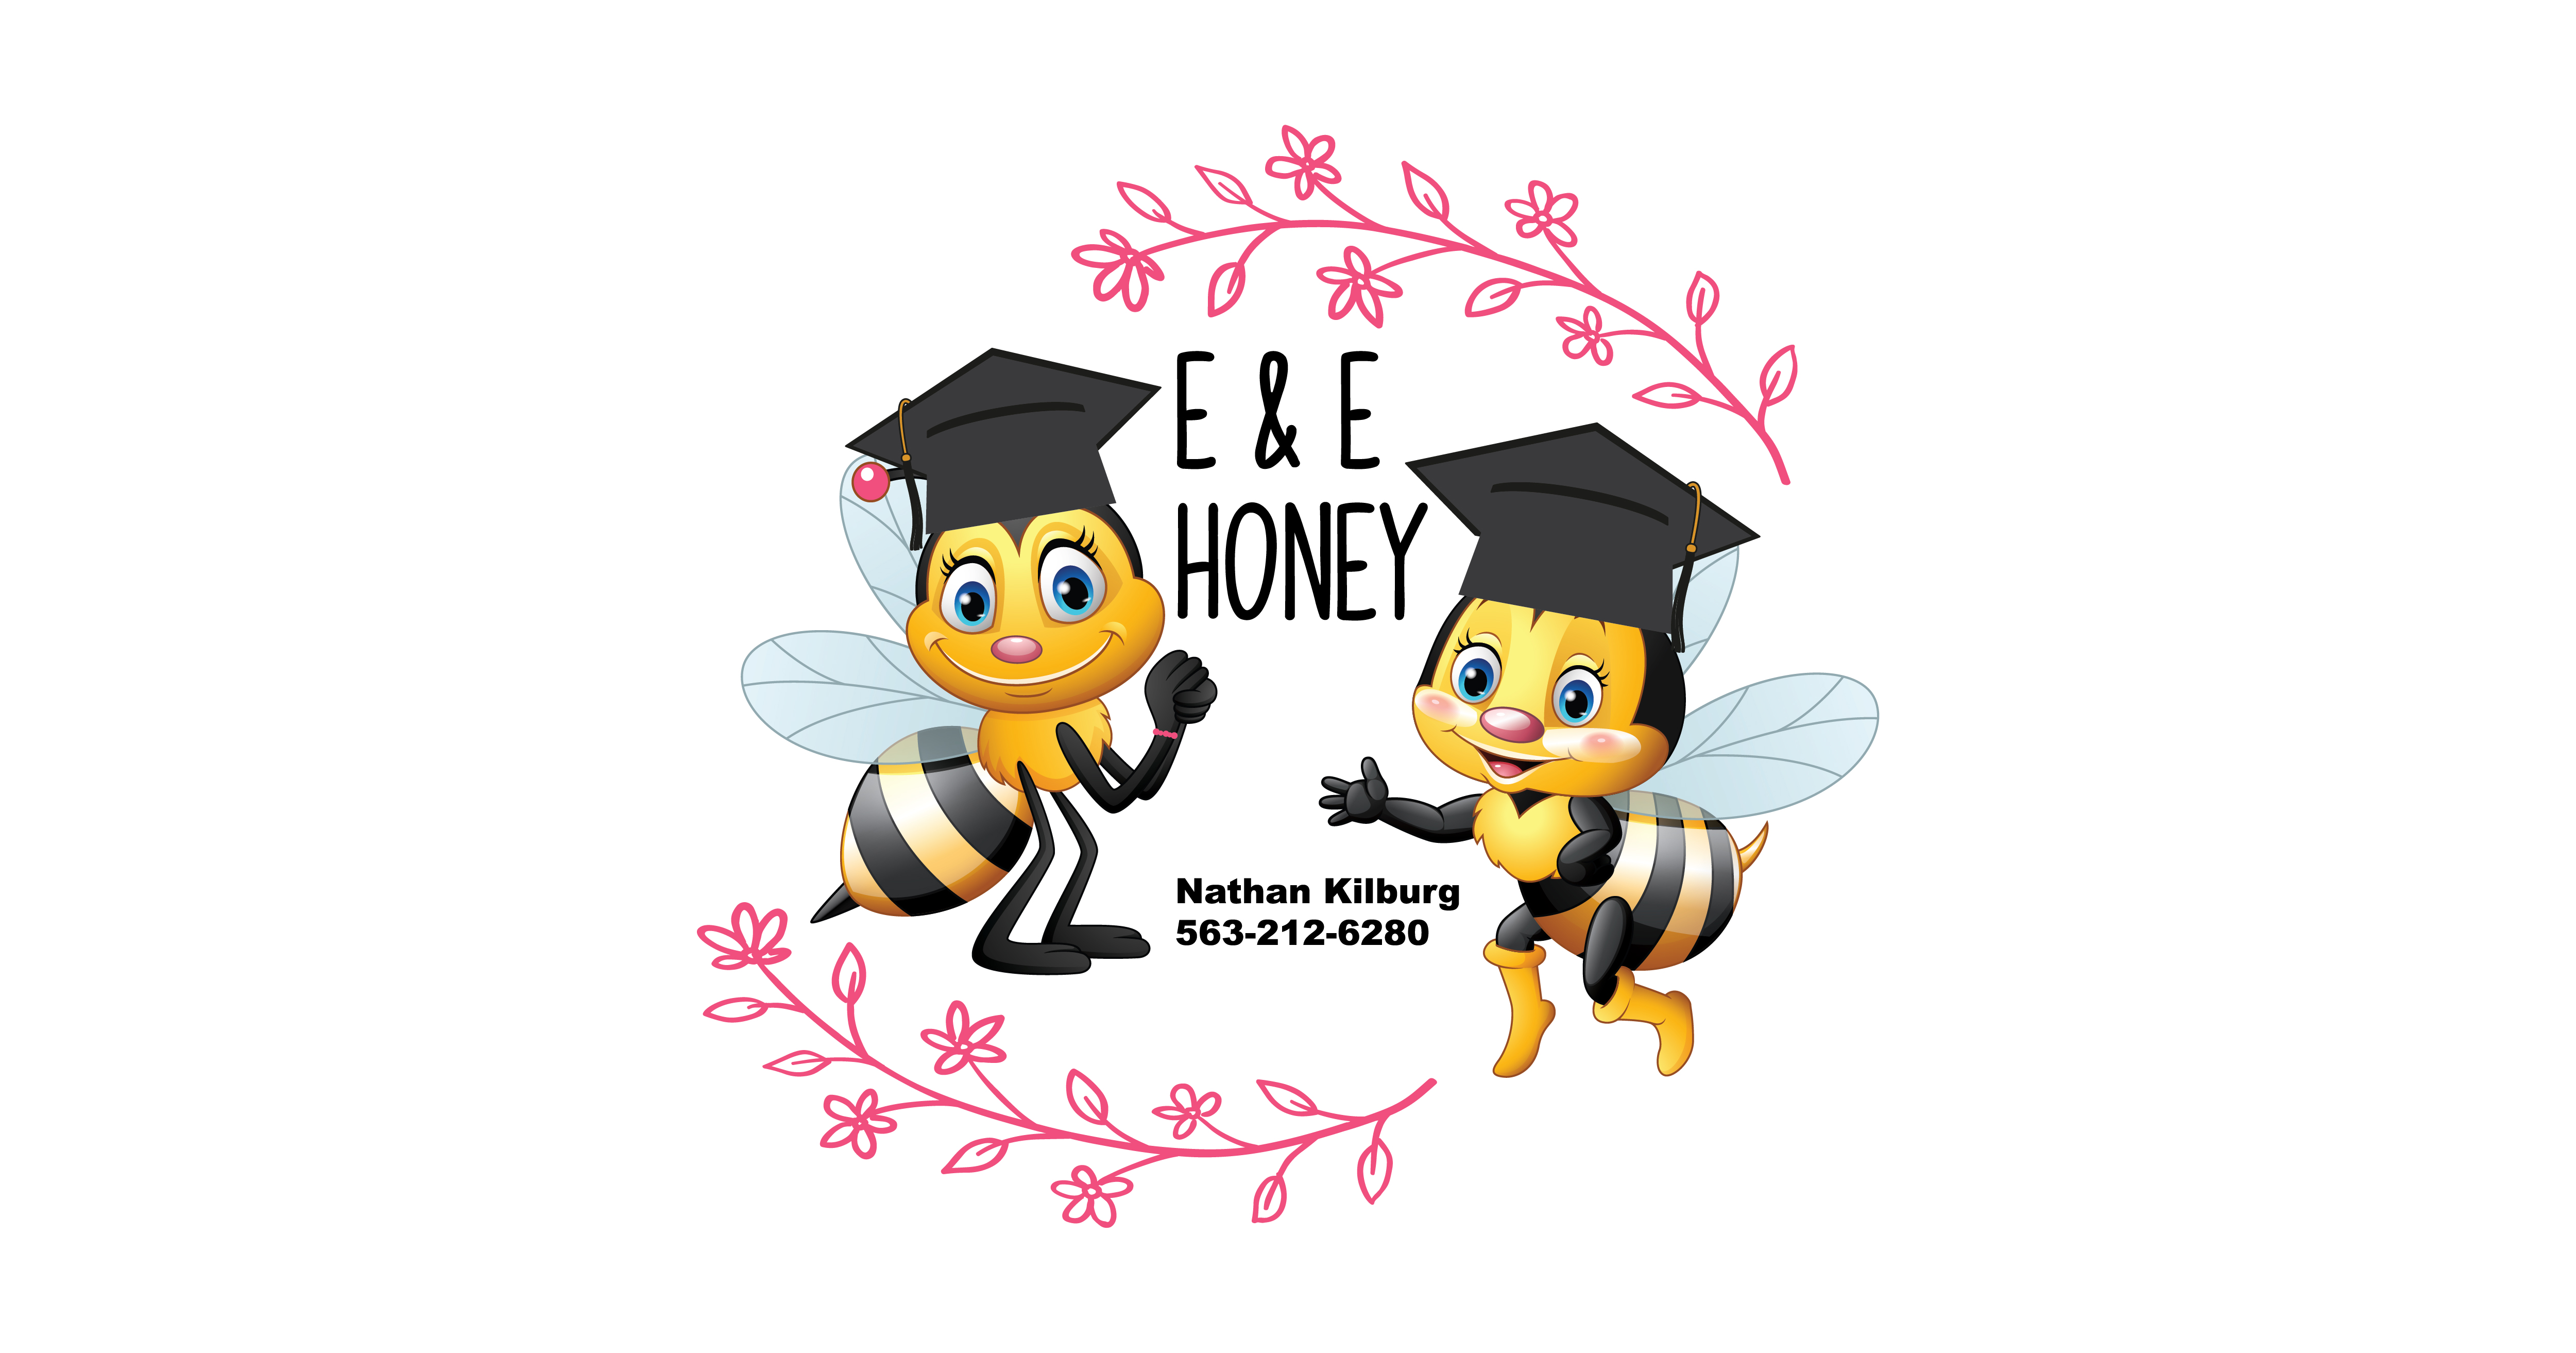 E&E Honey LOGO